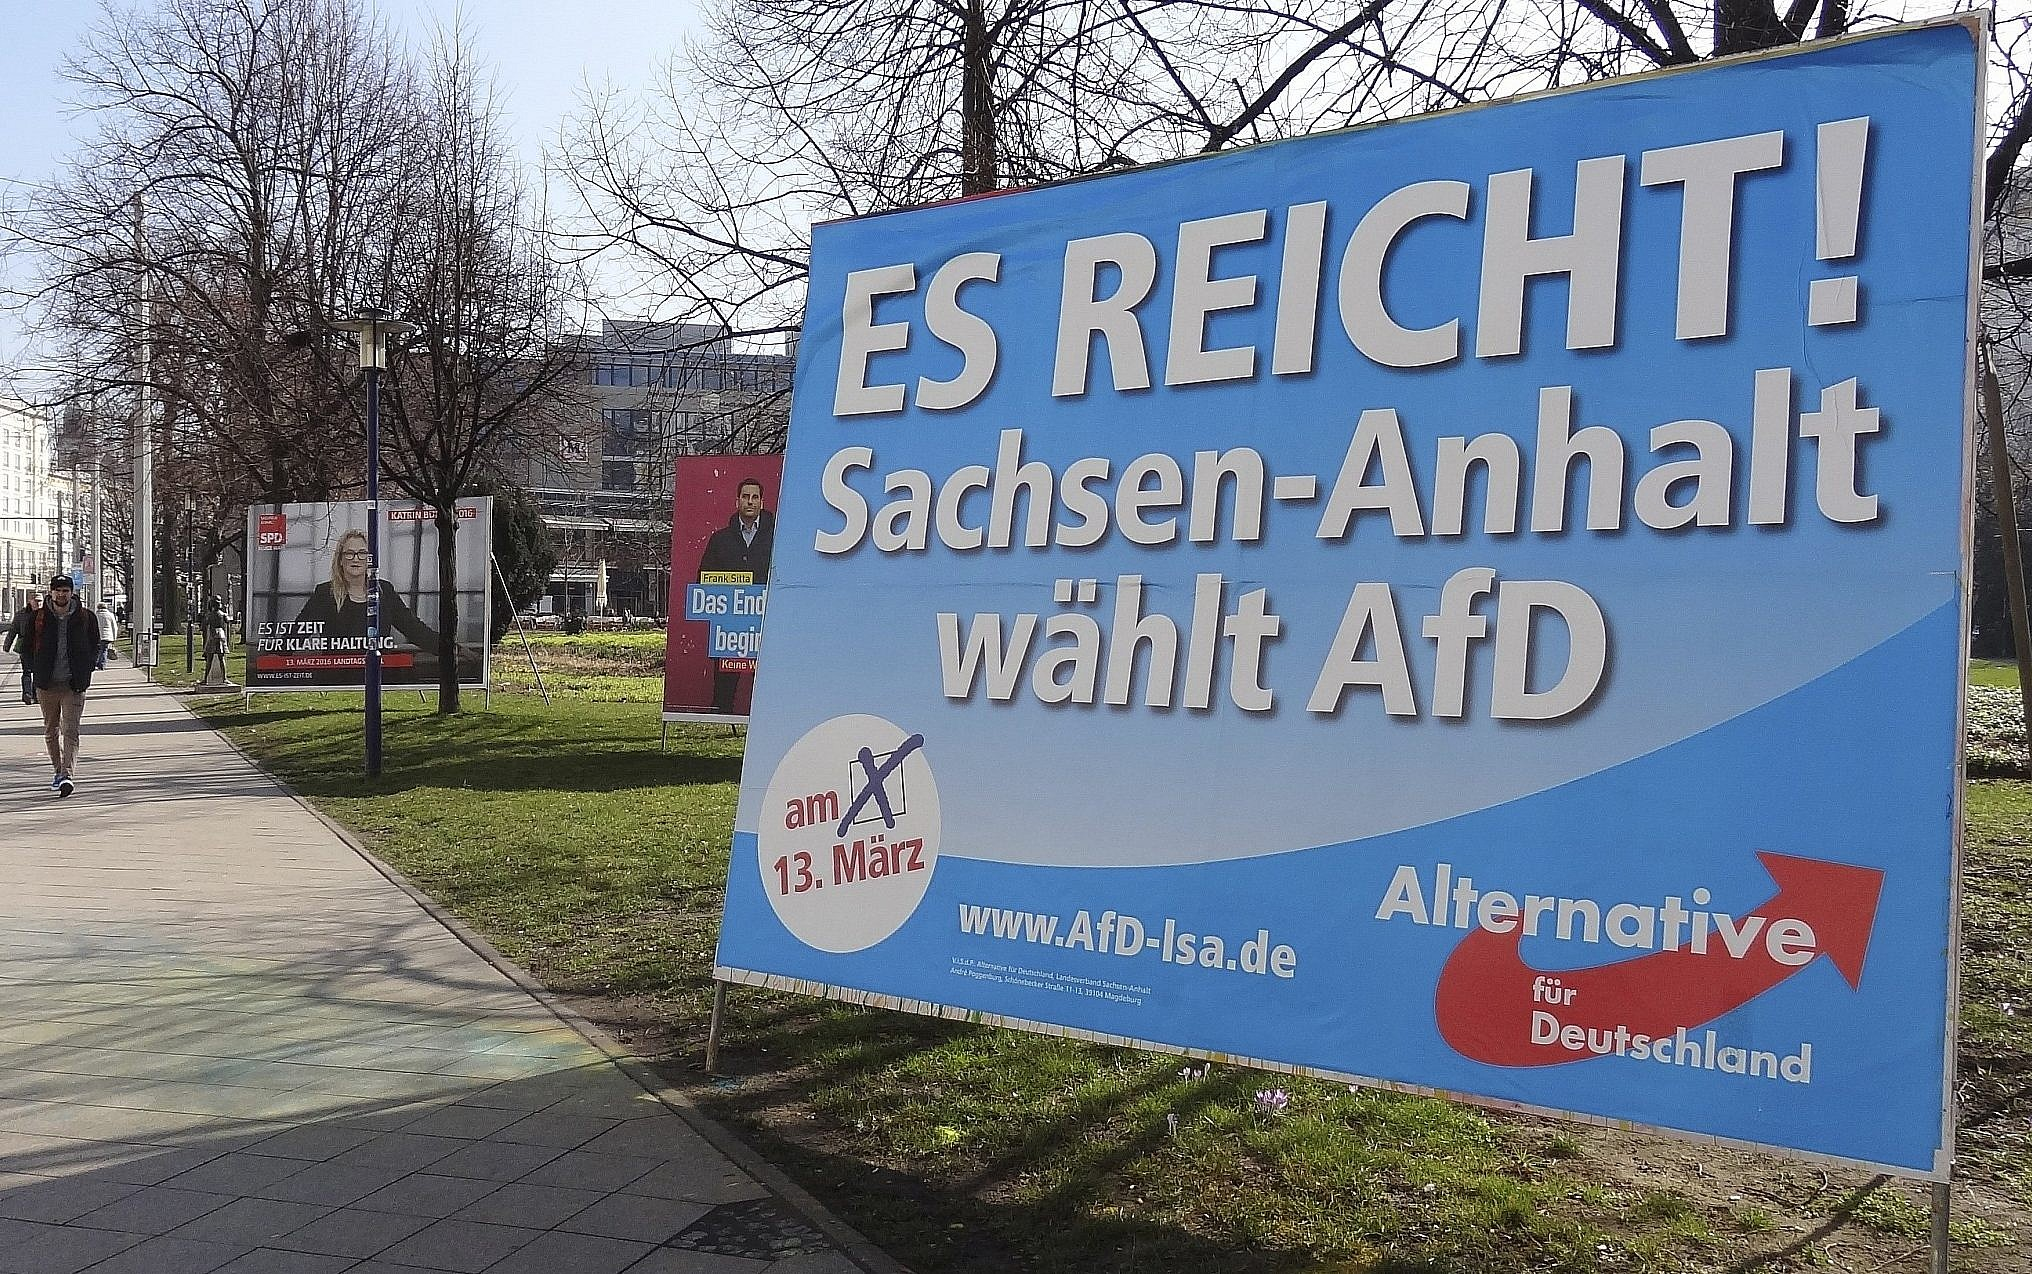 Member of Germany's far-right AfD party 'converts to Islam'